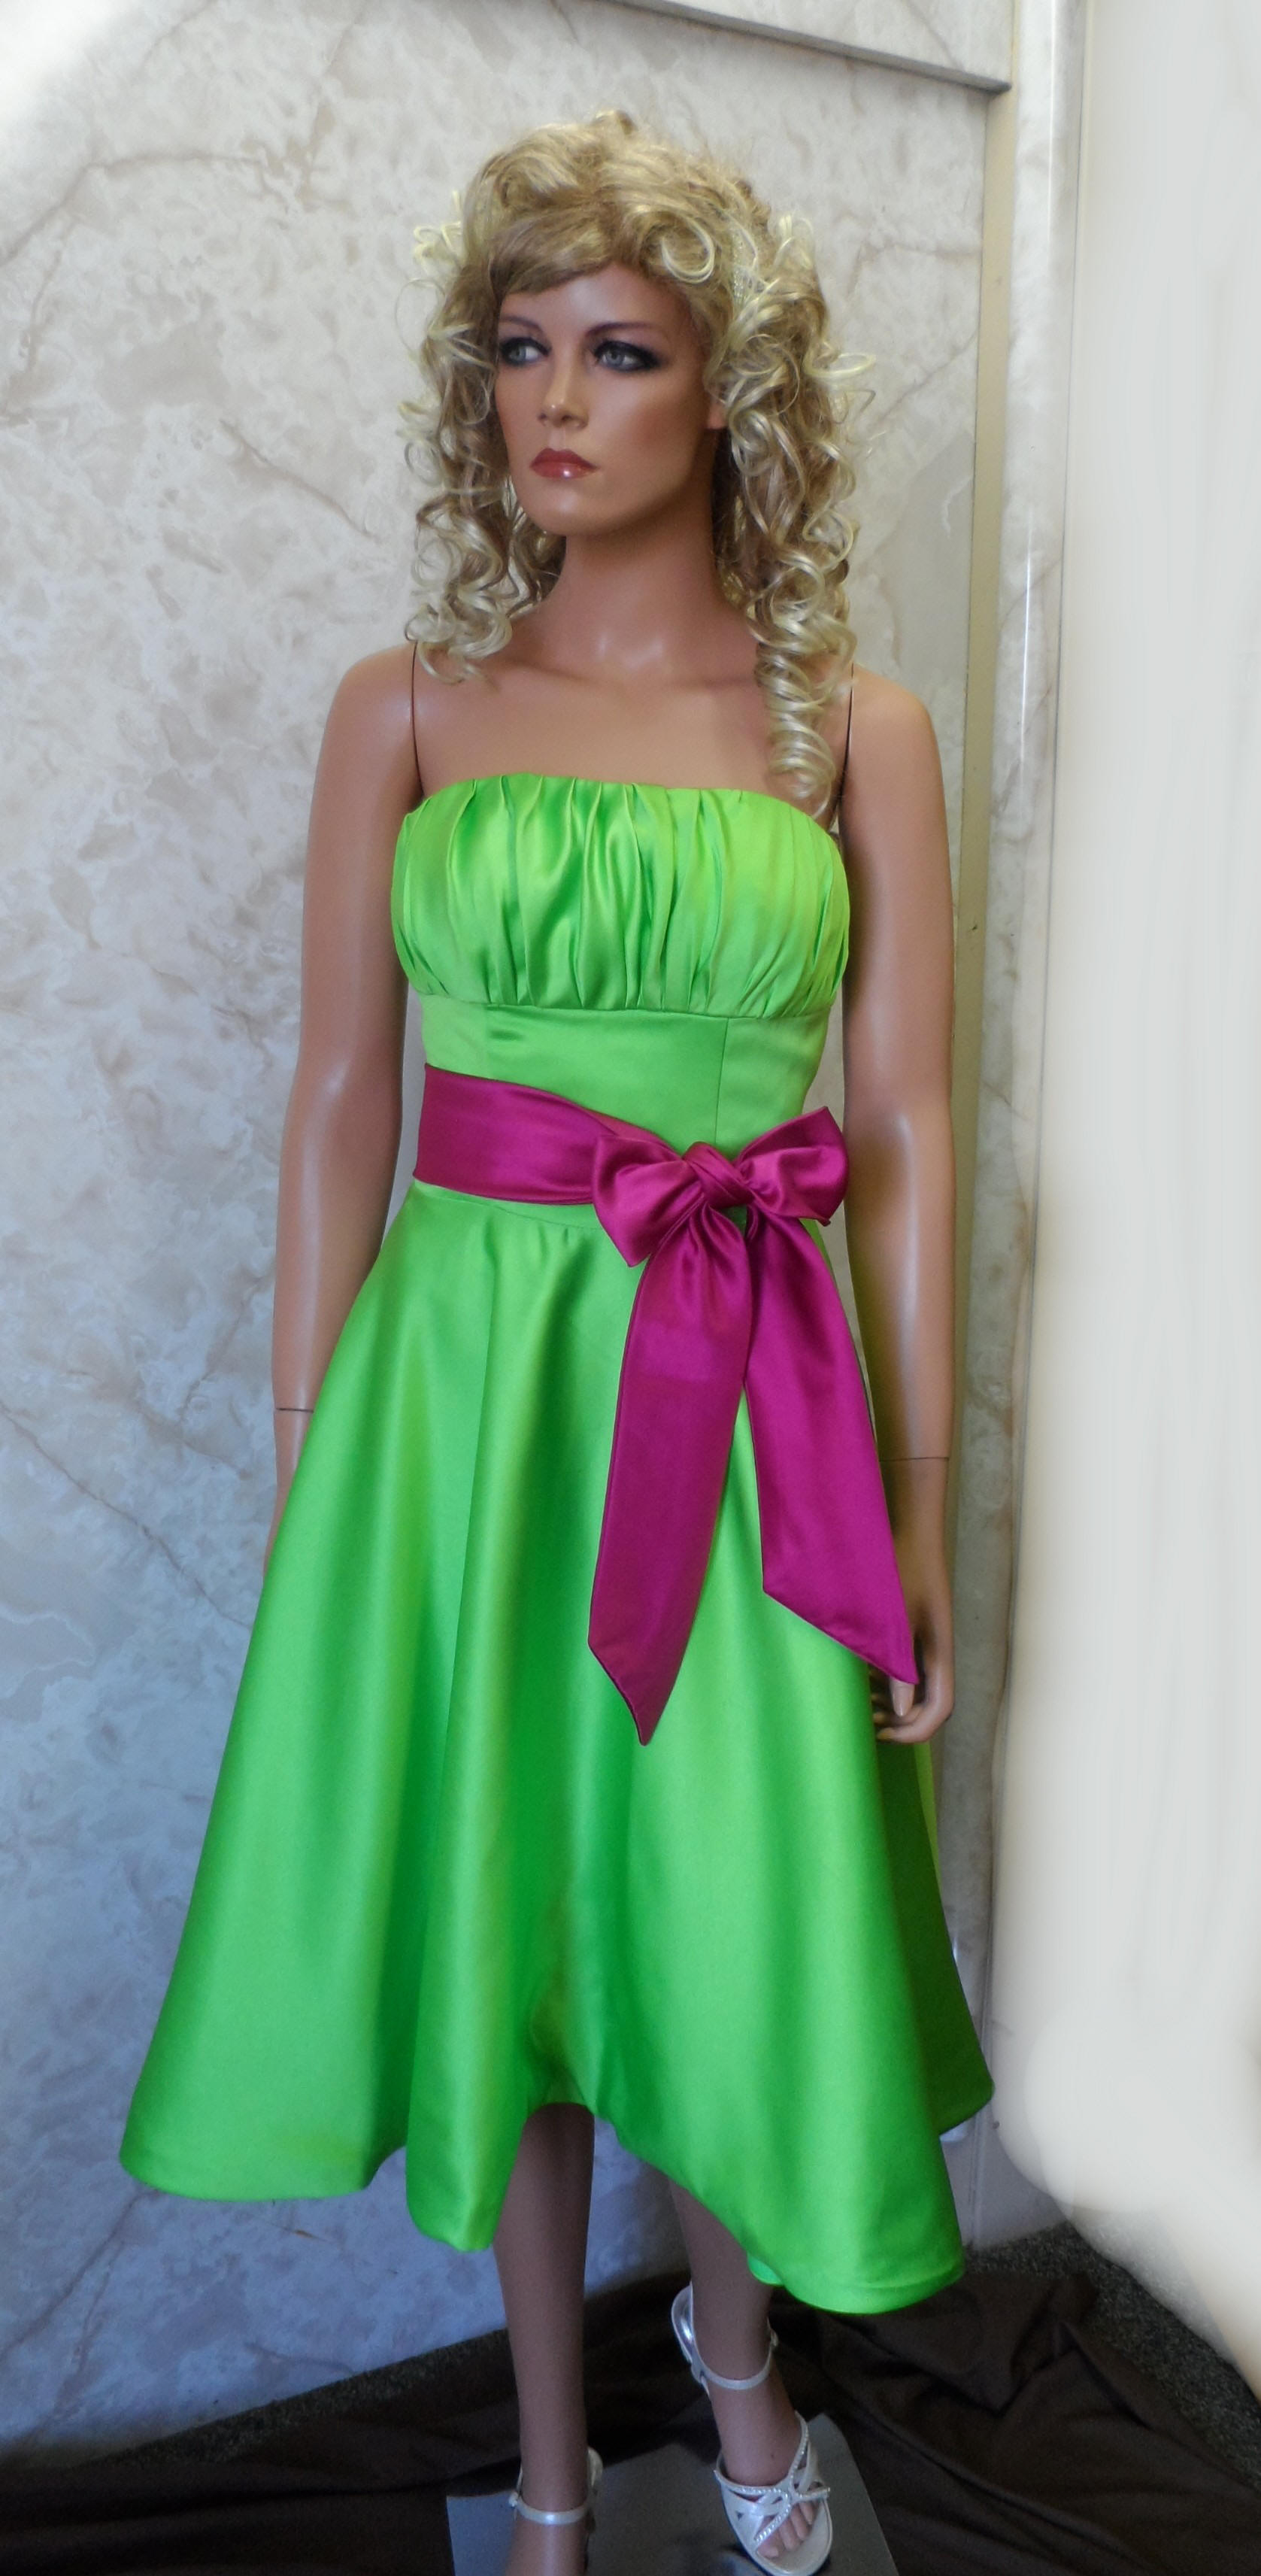 Lime green strapless dress with fuschia sash